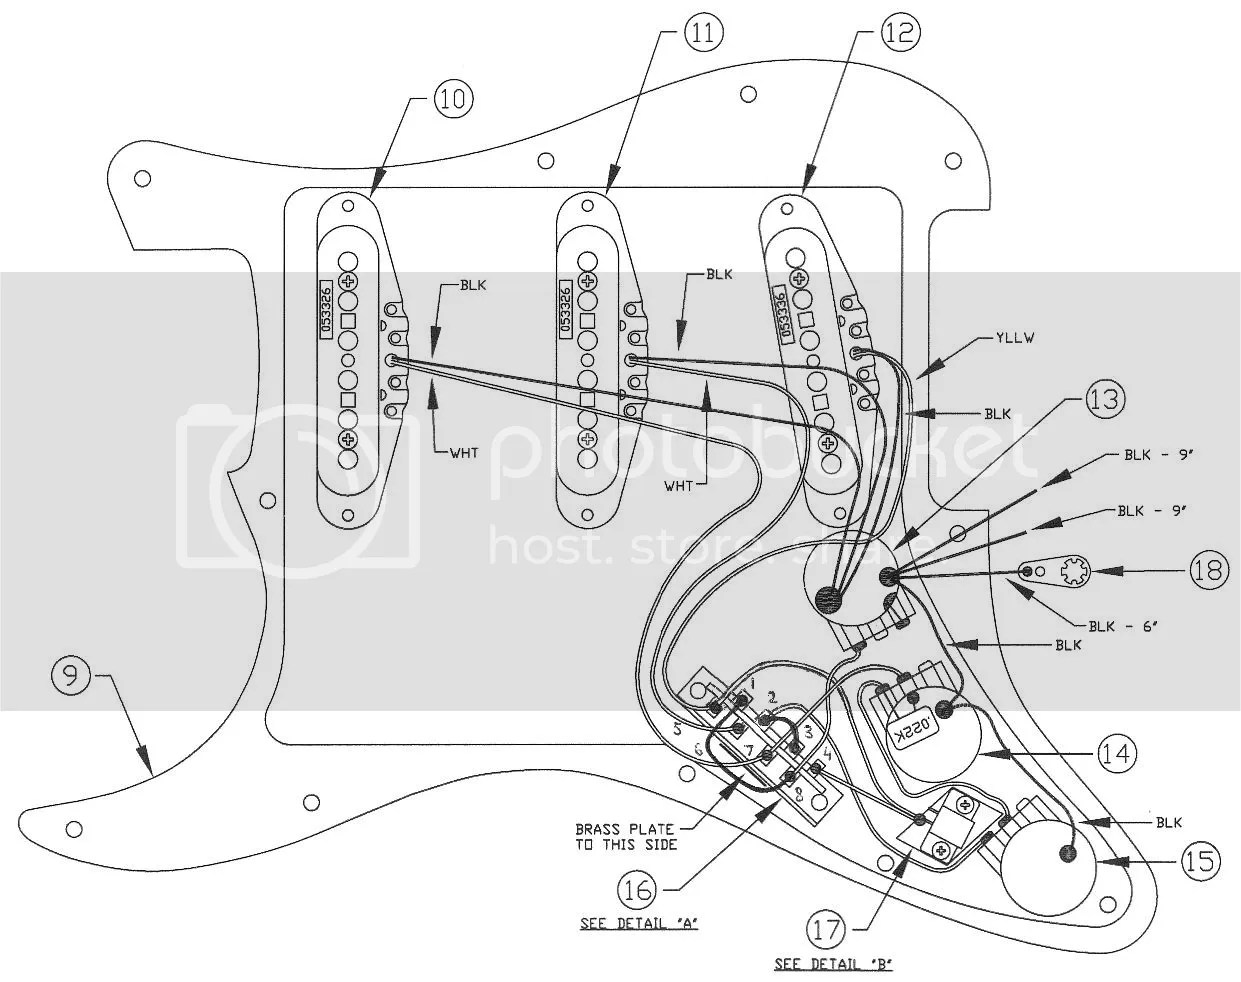 fender hss stratocaster wiring diagram 2009 hyundai sonata for tele special database hrr best library 5 way mod deluxe player